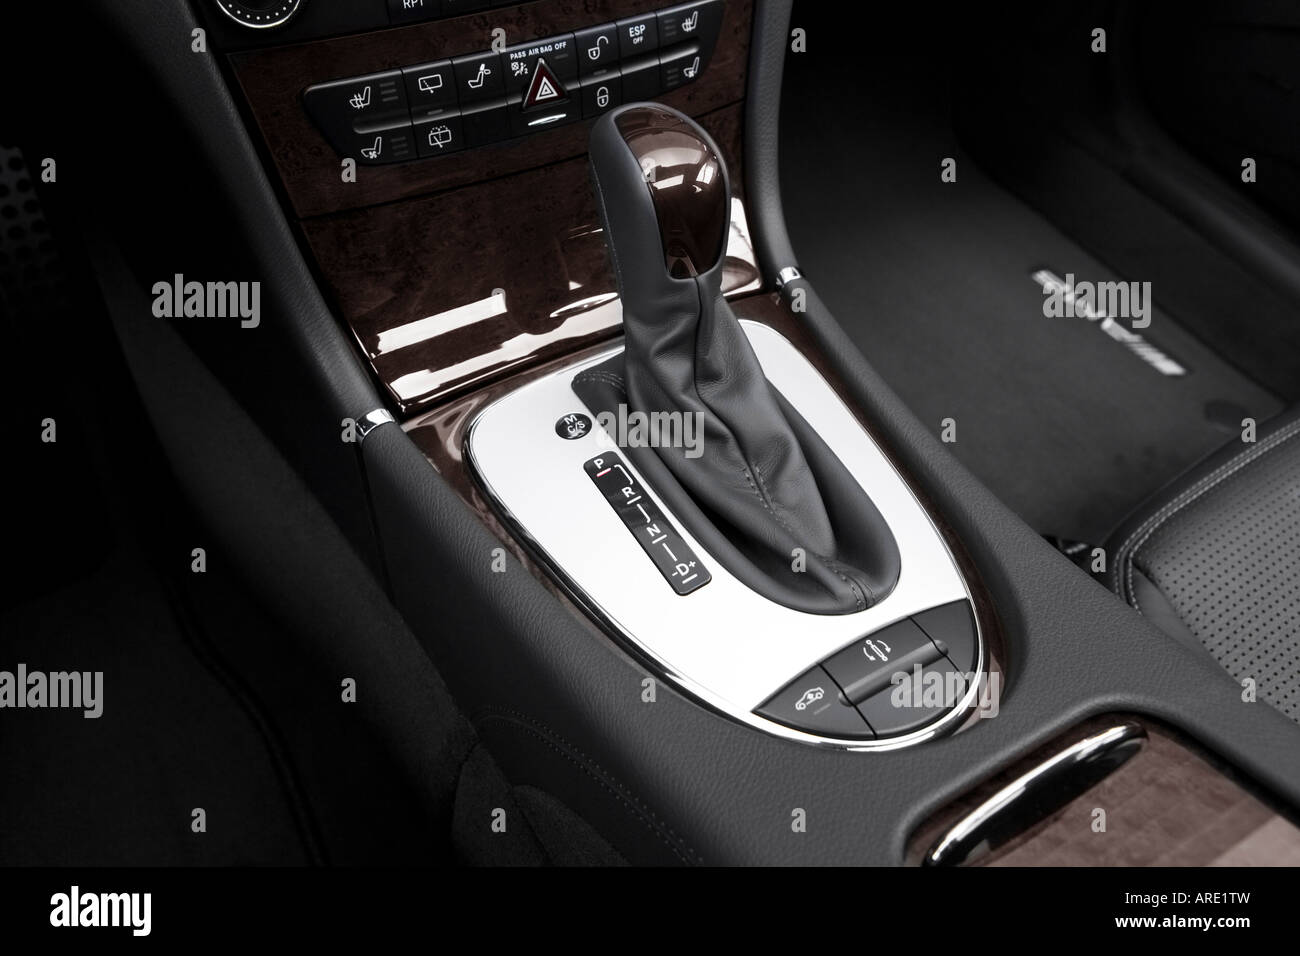 2005 mercedes benz e55 amg in black gear shifter center console stock photo royalty free. Black Bedroom Furniture Sets. Home Design Ideas